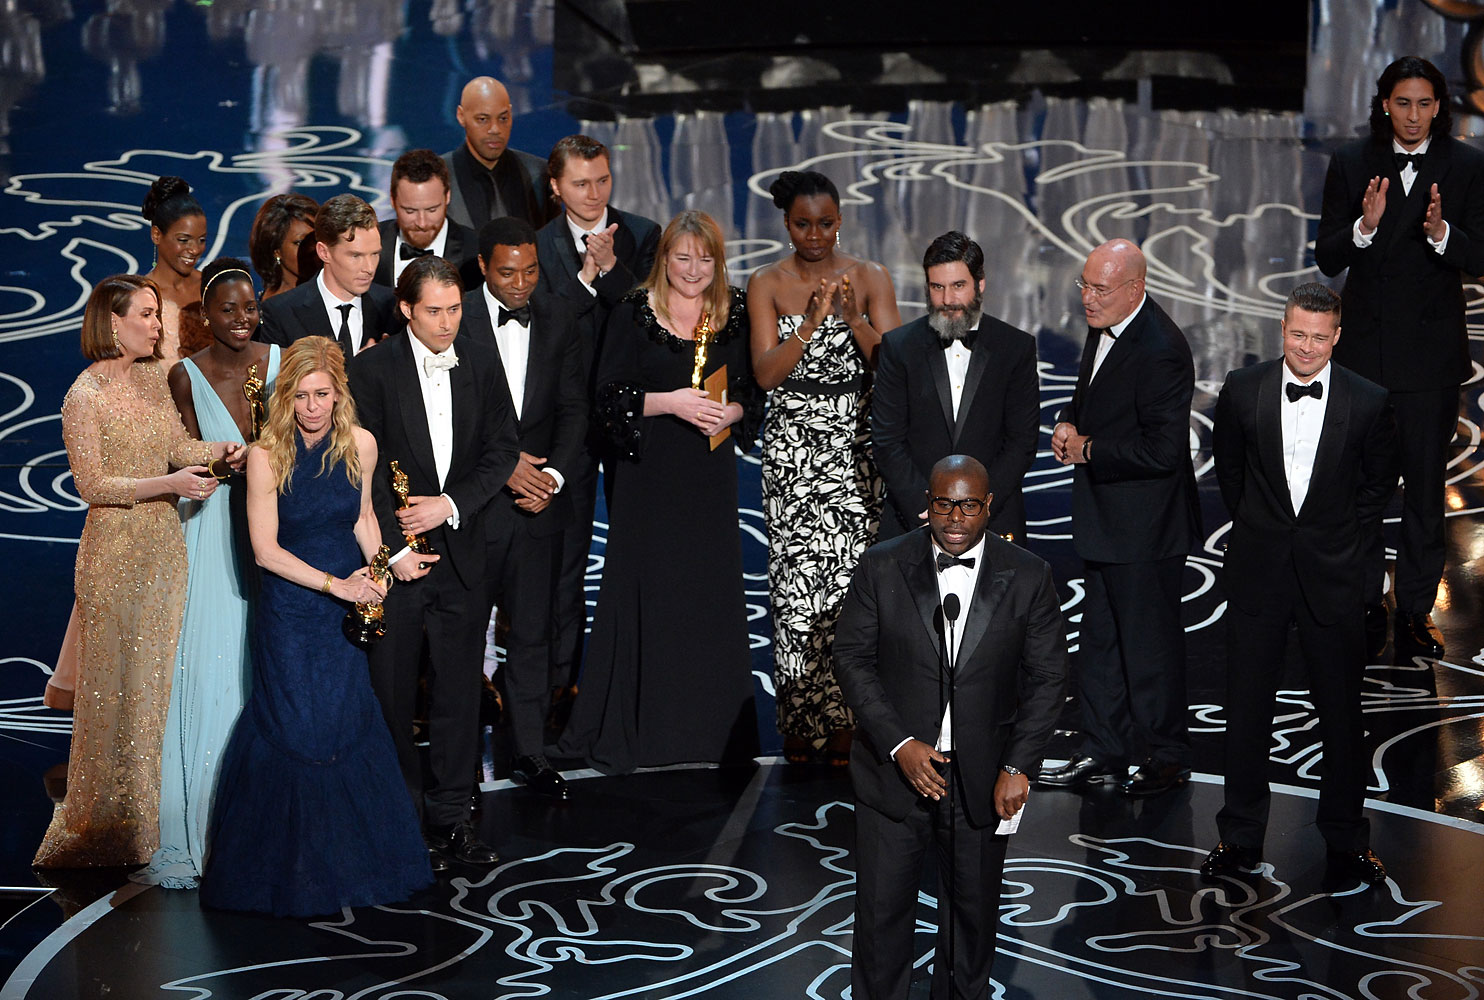 Director Steve McQueen (C) accepts the Best Picture award for '12 Years a Slave' onstage during the Oscars at the Dolby Theatre on March 2, 2014 in Hollywood, California.